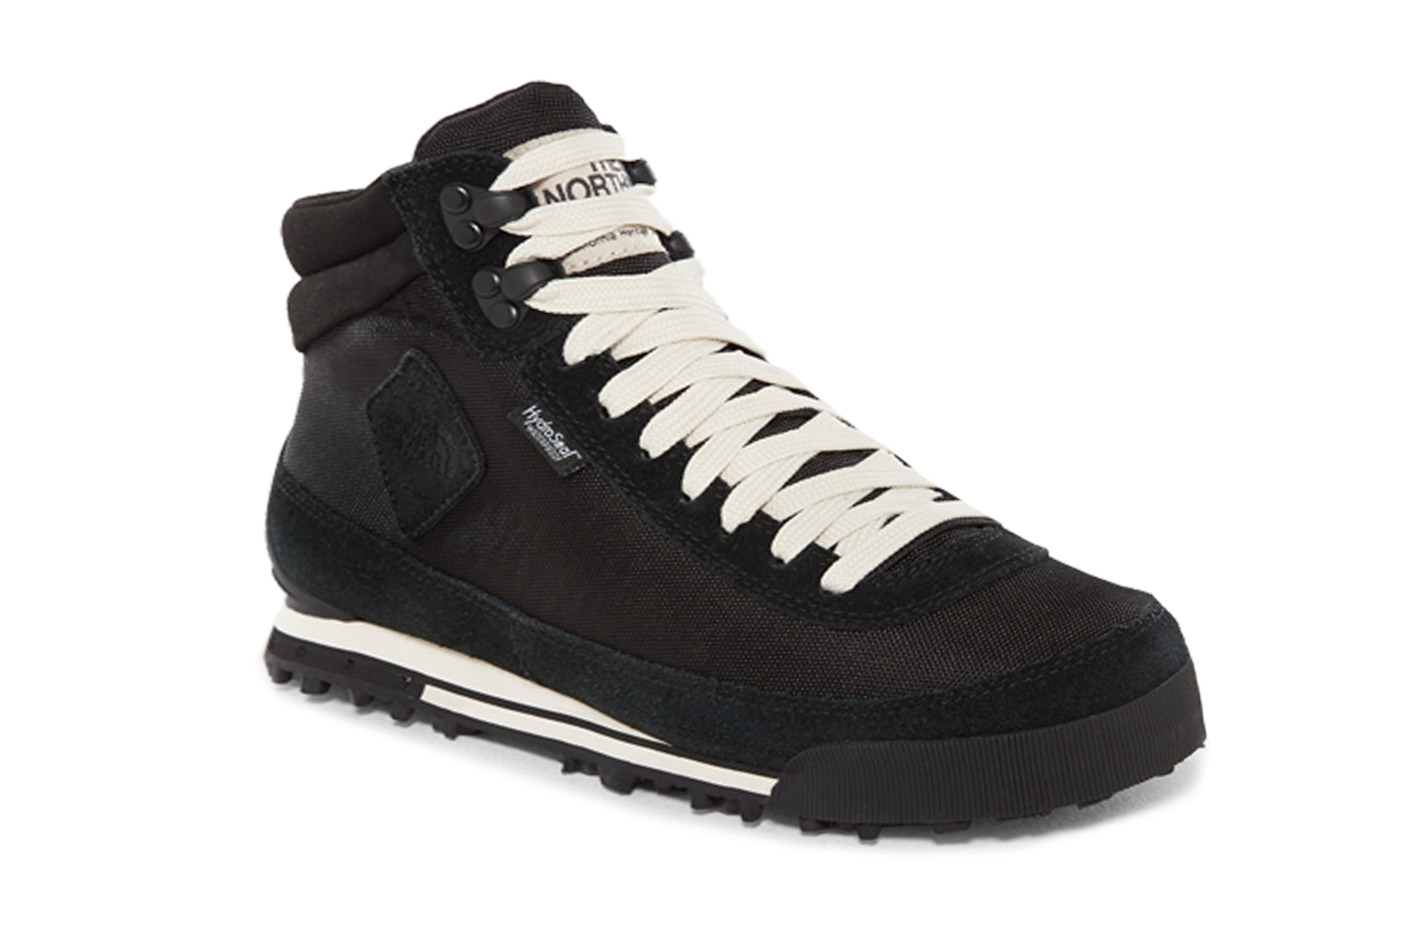 official photos 84d91 b1429 Damen schuhe The North Face T0A1MFLQ6 | SCHWARZ | für 79,50 ...